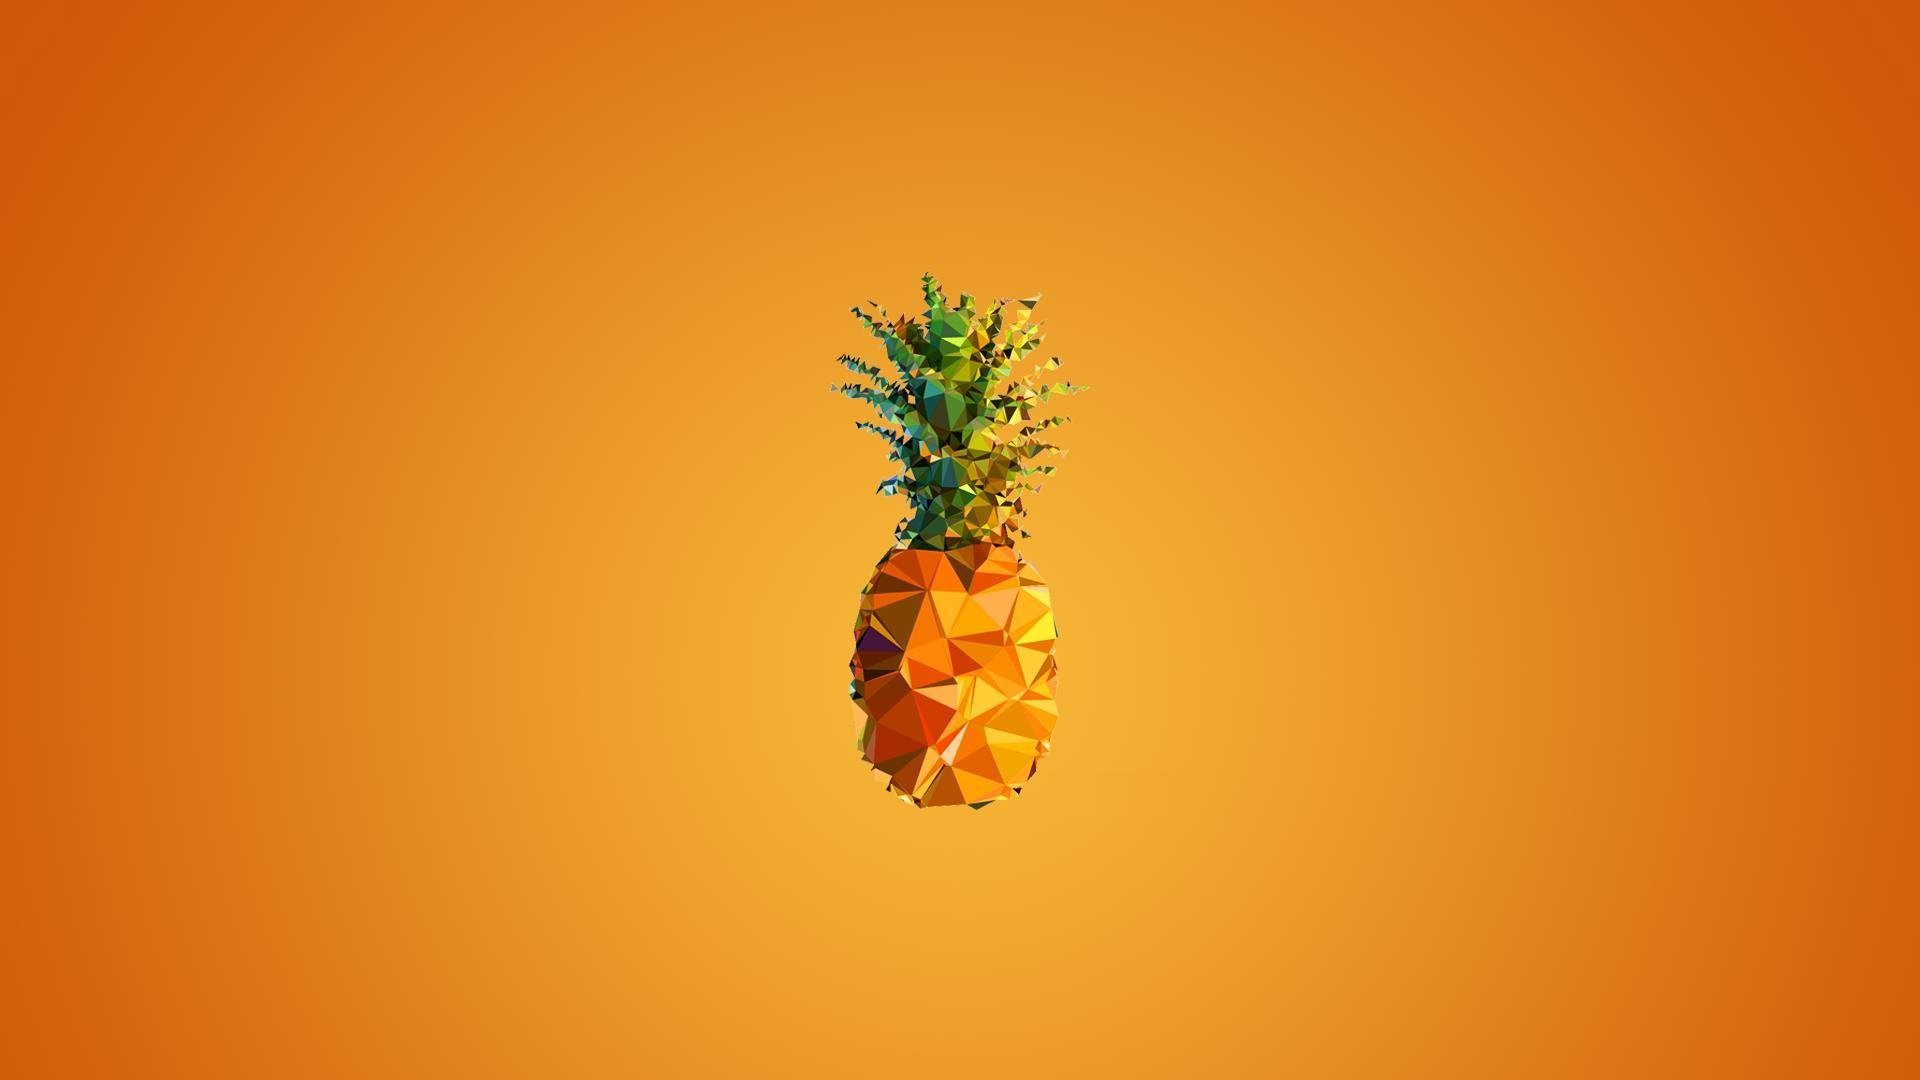 Create a unique look for your ios 14 home screen with these ideas for aesthetic backgrounds, icons, and phone wallpaper. Pineapple Art In Orange Background HD Orange Aesthetic